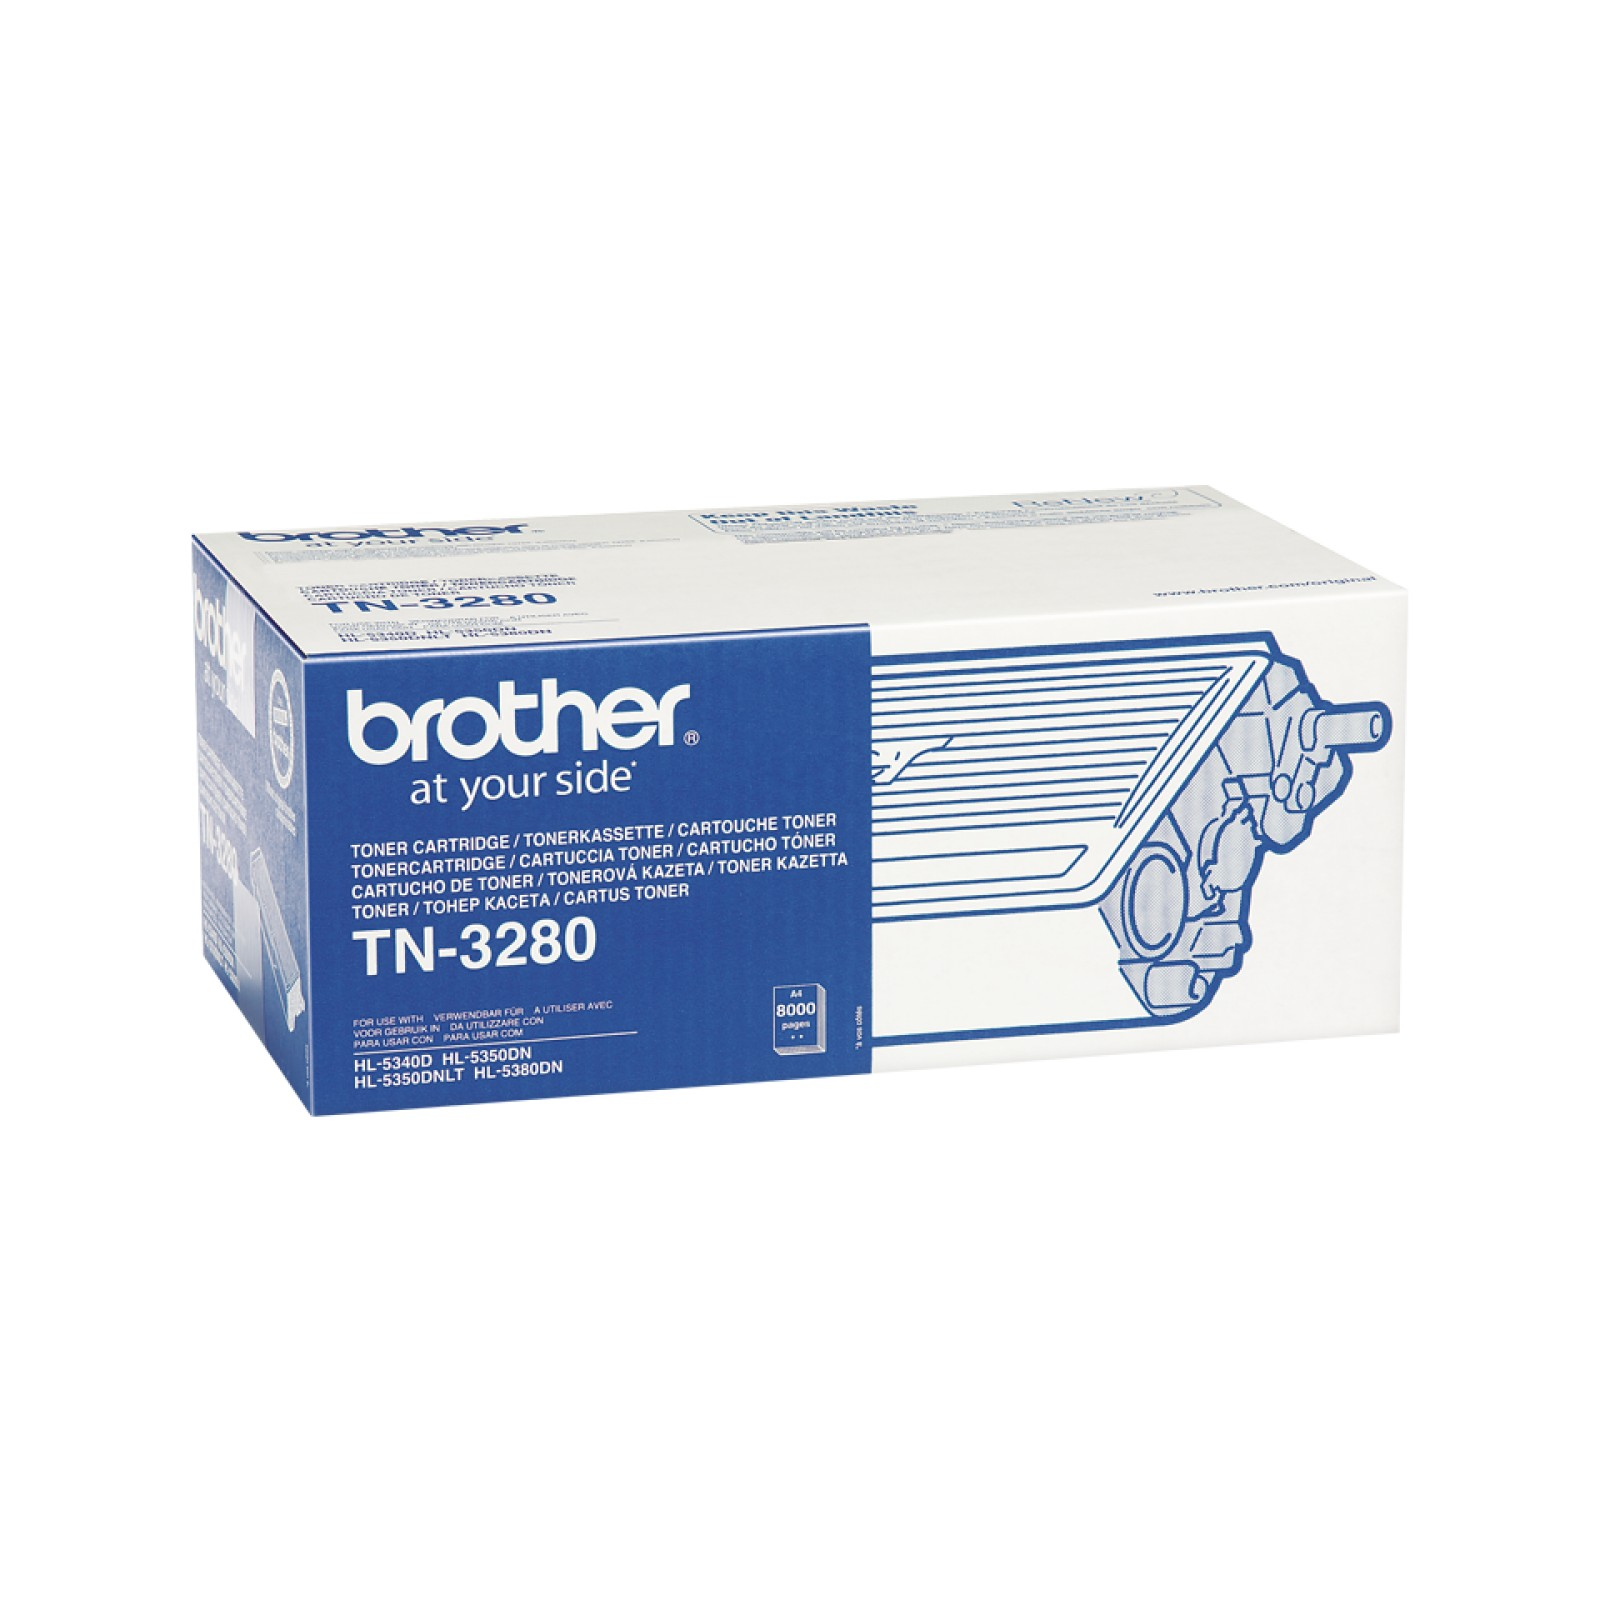 Brother TN-3280 Tonerkartusche schwarz